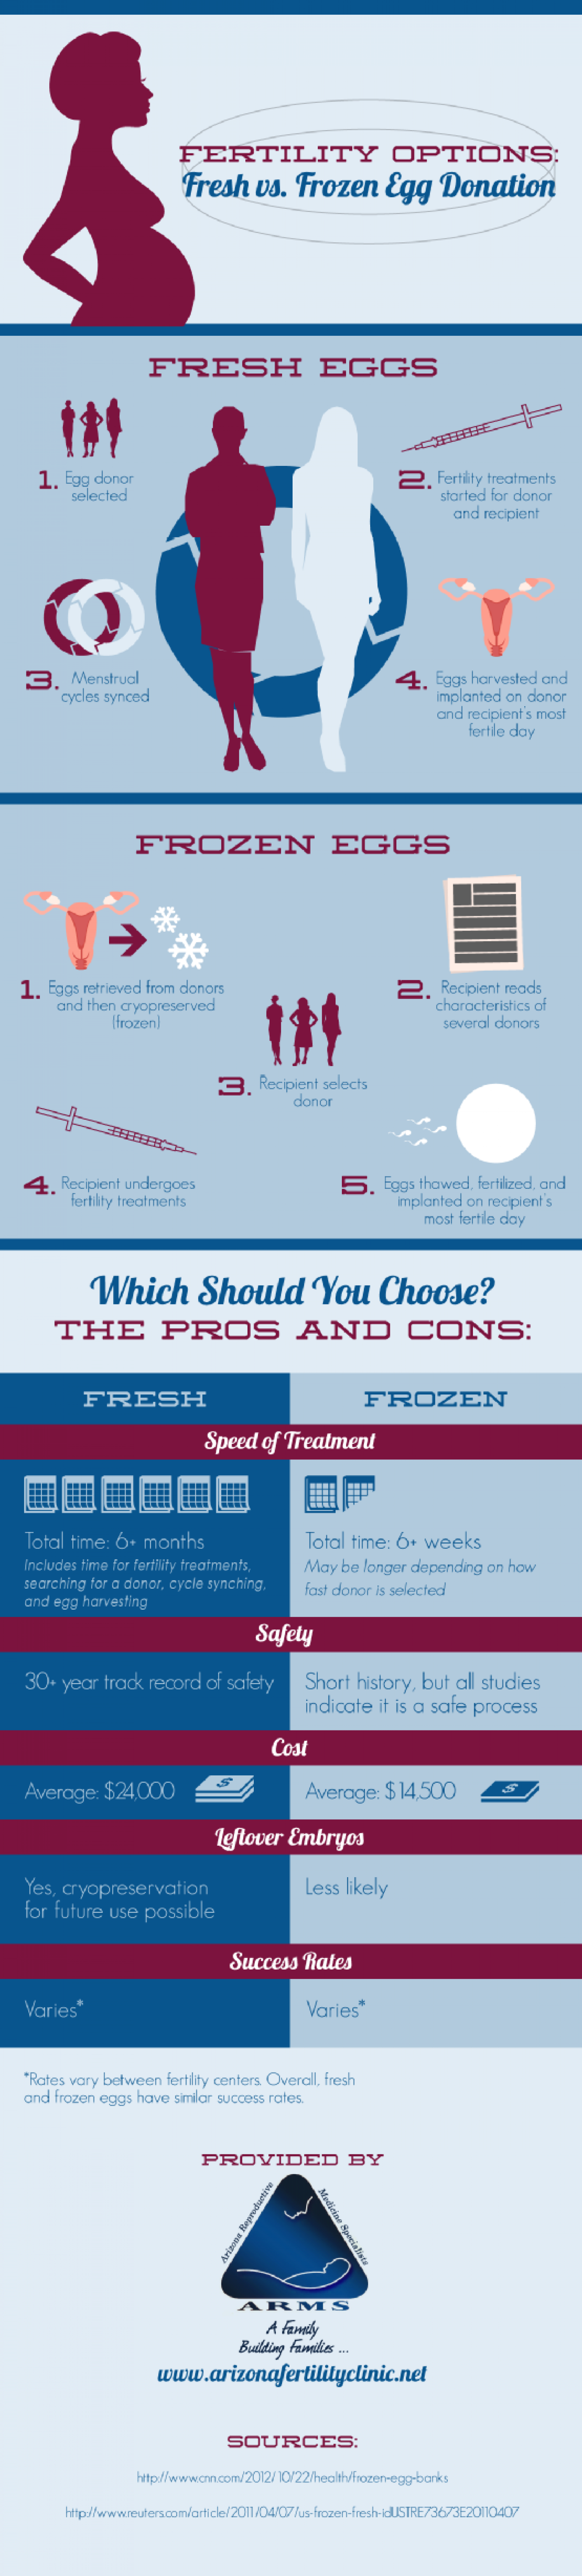 Fertility Options: Fresh vs. Frozen Egg Donation  Infographic